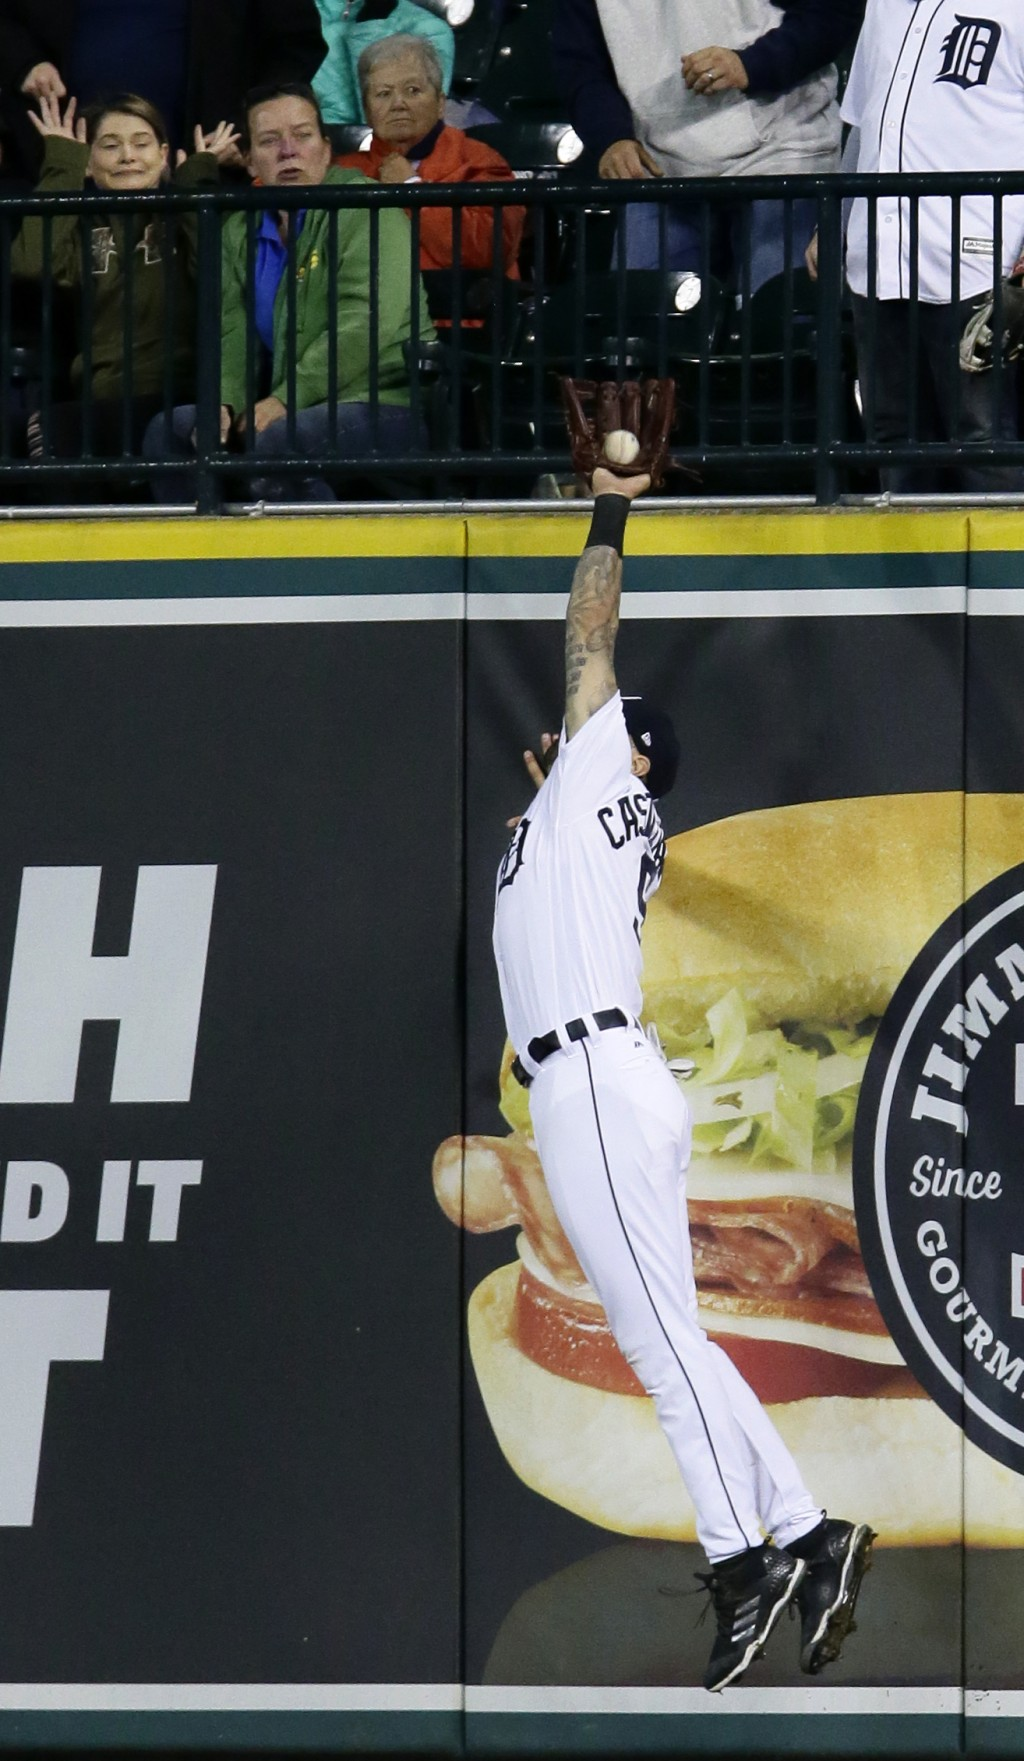 Detroit Tigers right fielder Nicholas Castellanos catches a fly ball hit by Houston Astros' Marwin Gonzalez during the eighth inning of a baseball gam